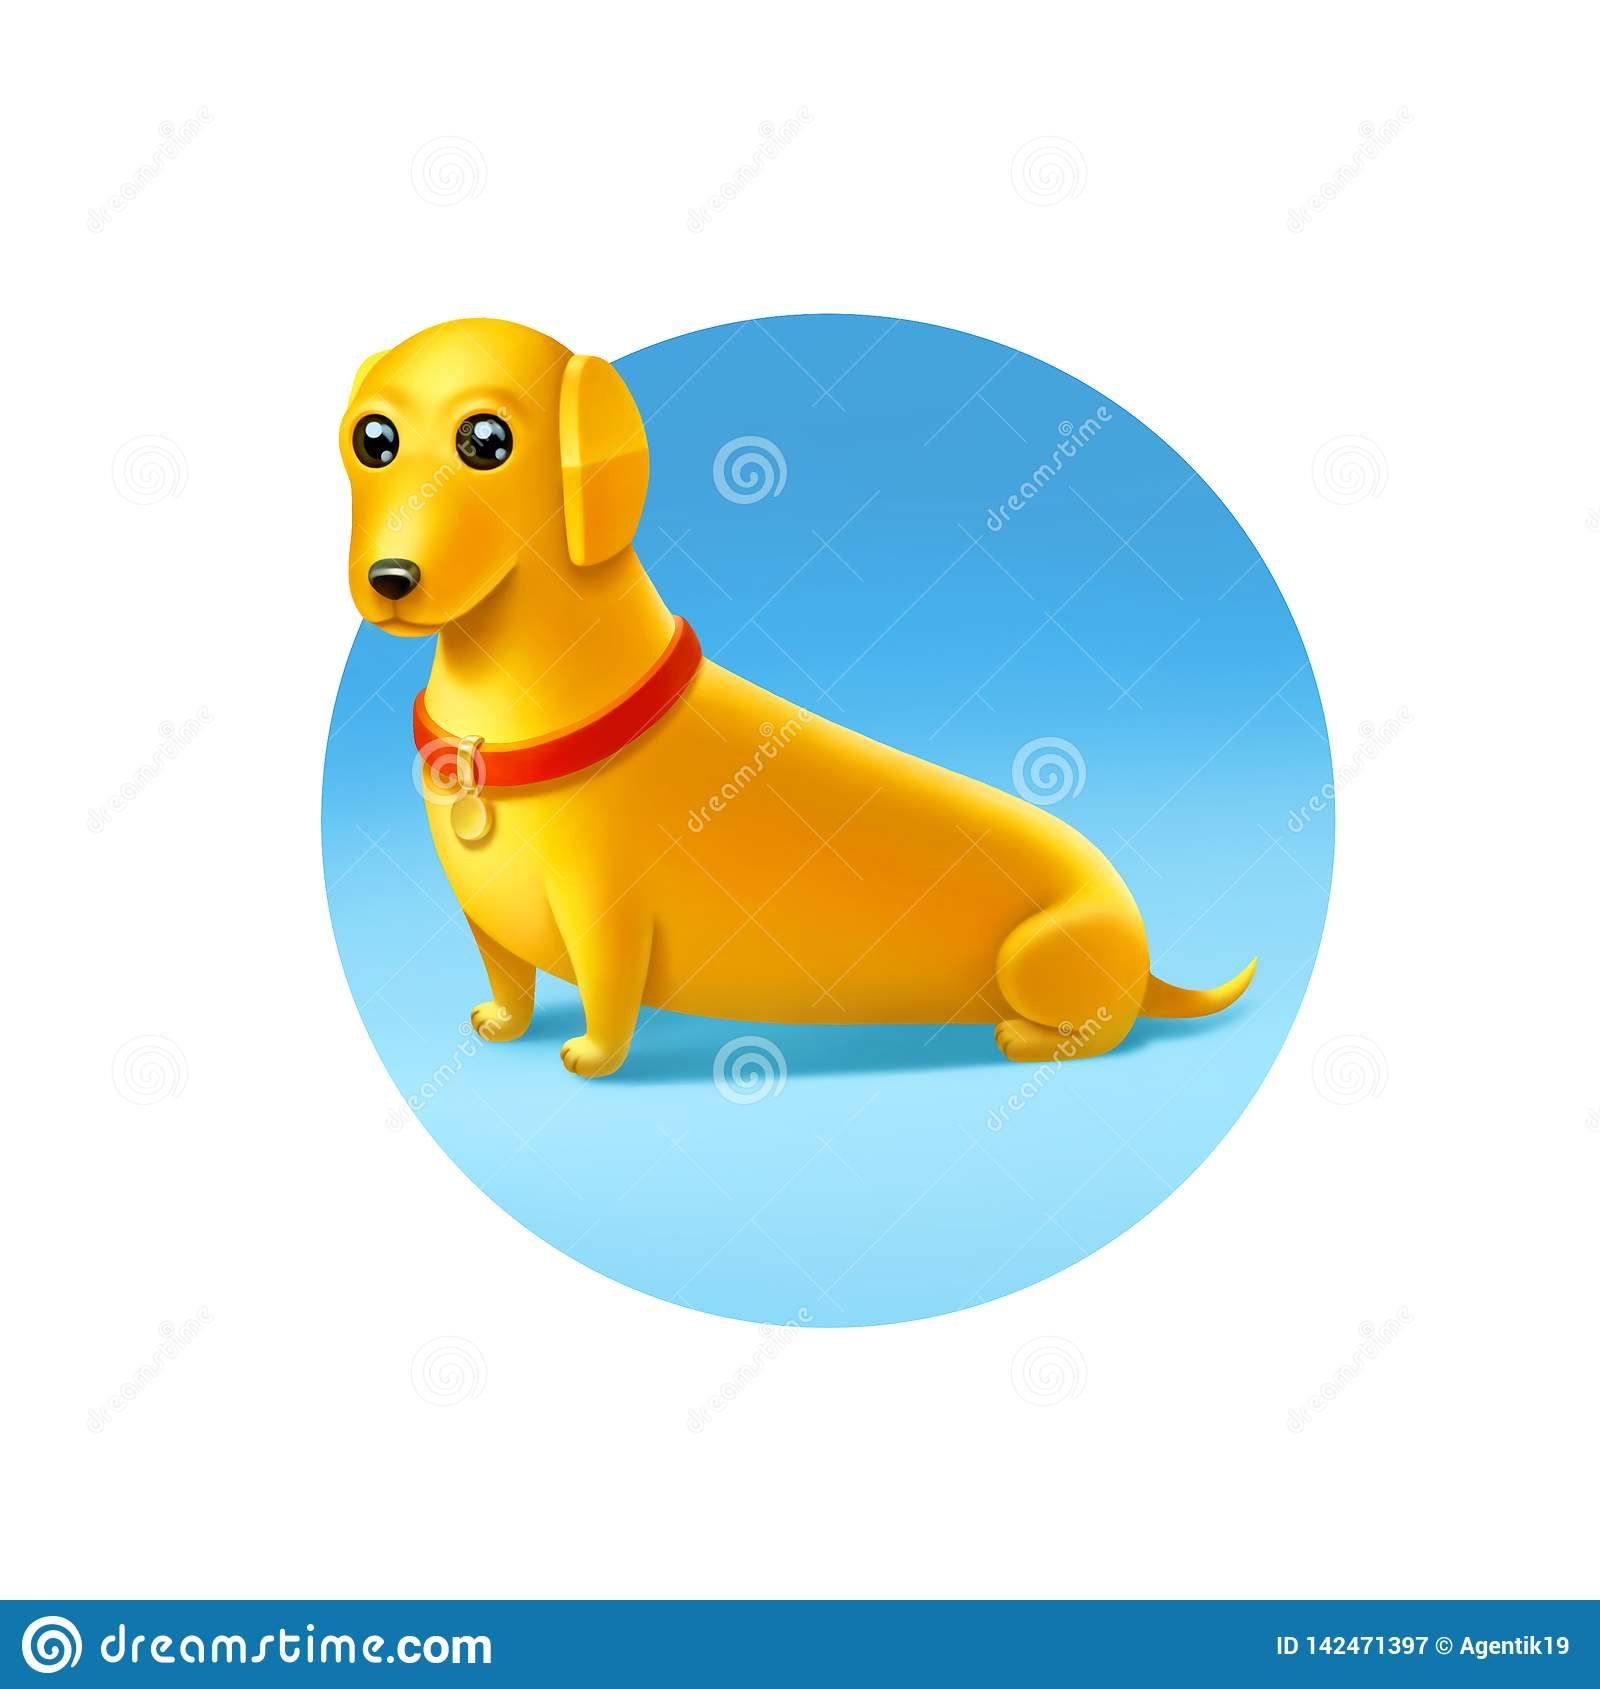 Yellow Dog with a red collar on light blue background